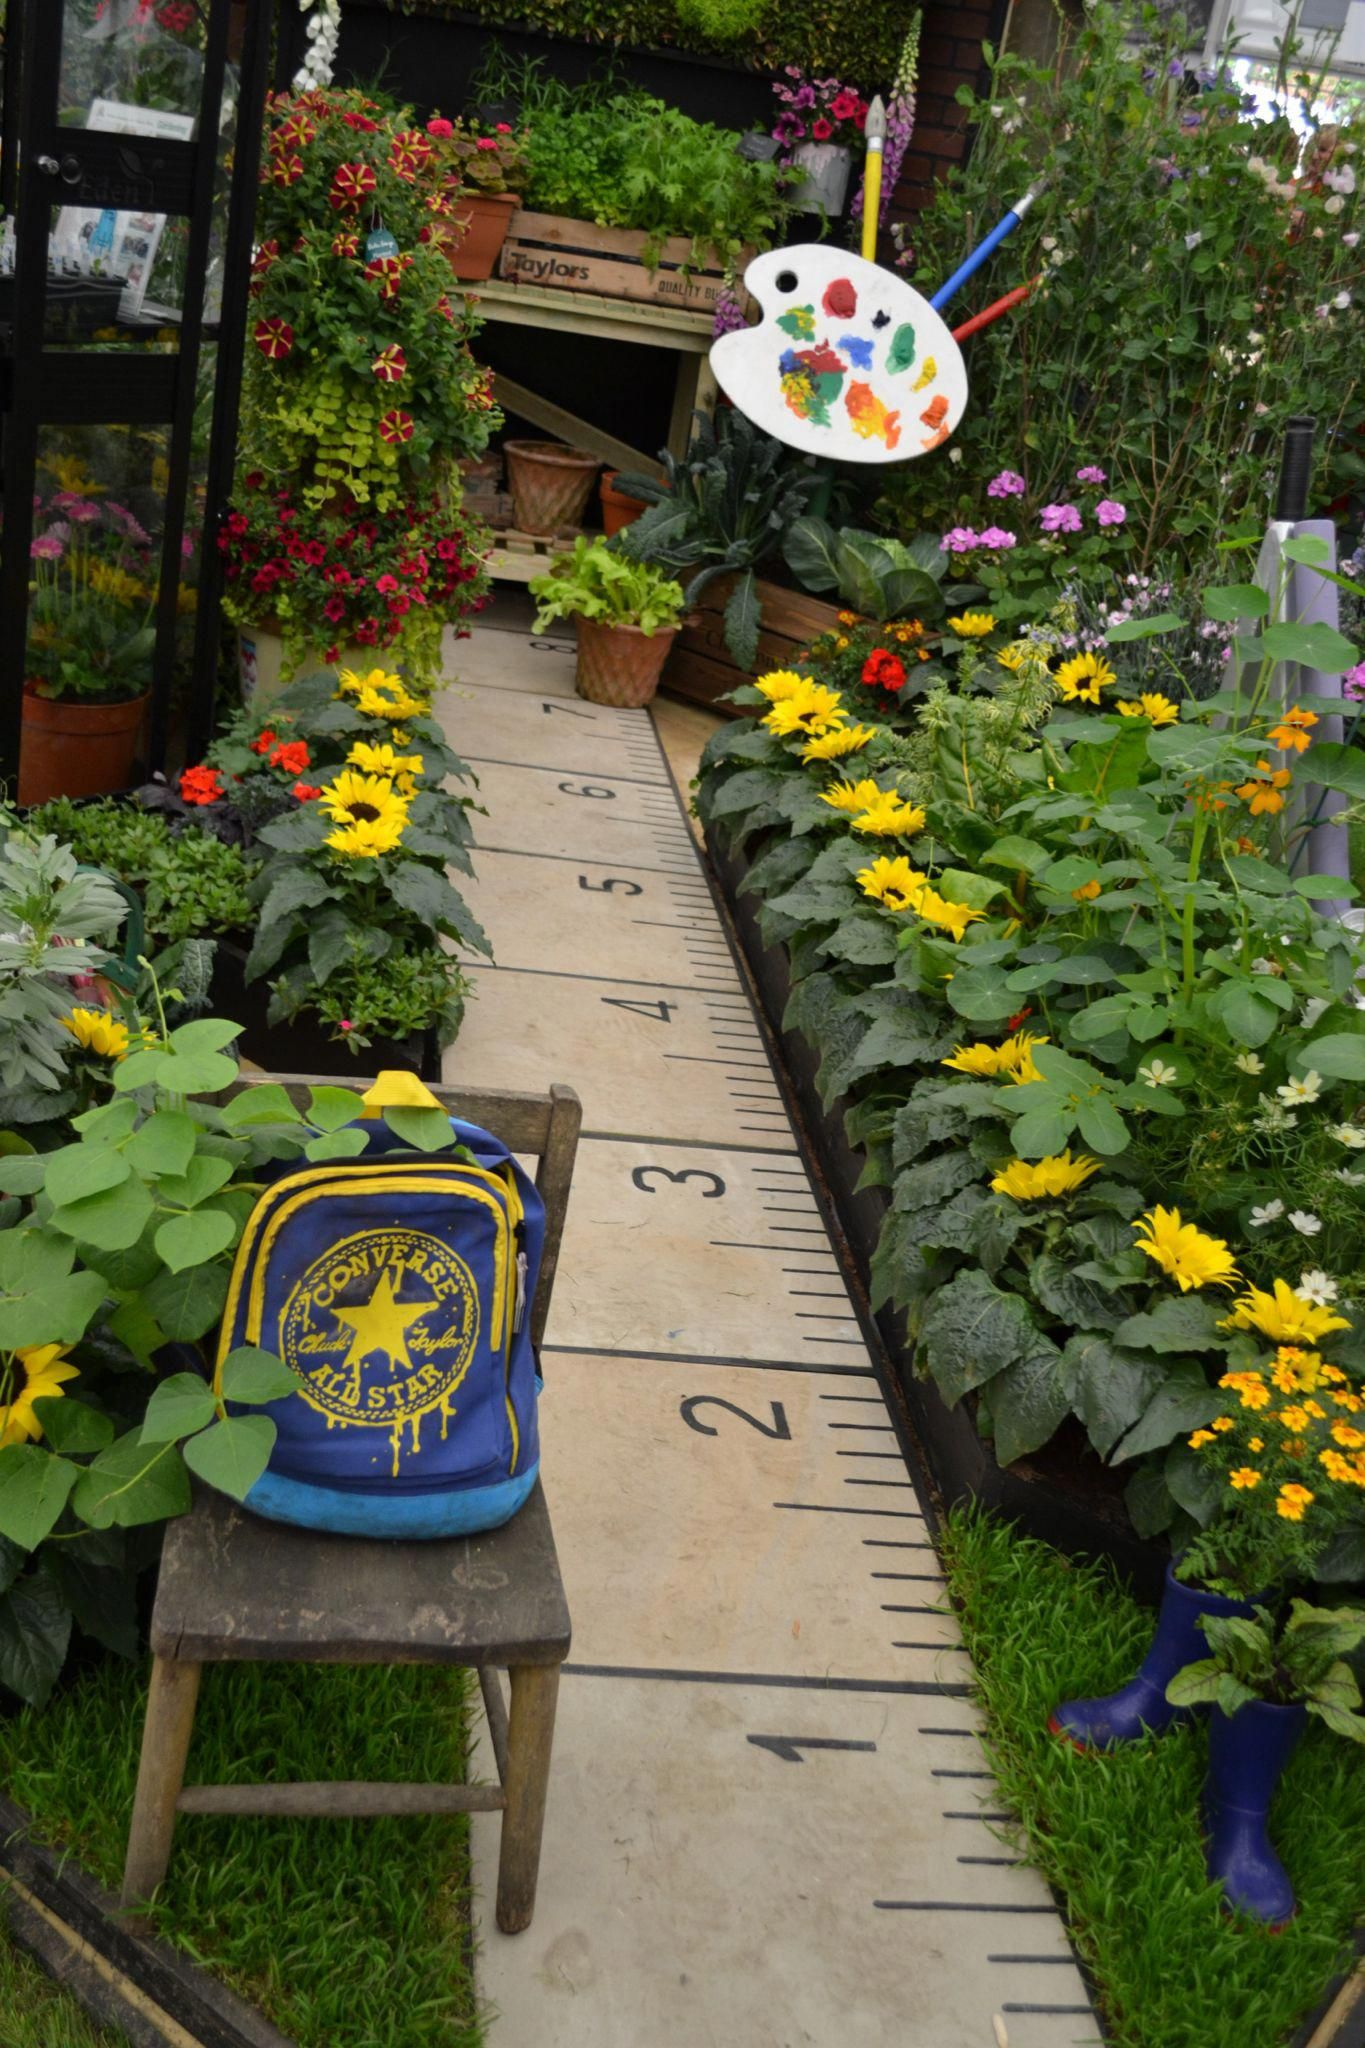 Ruler Footpath Lined With Sunflowers Ideal For Kids Garden Or A